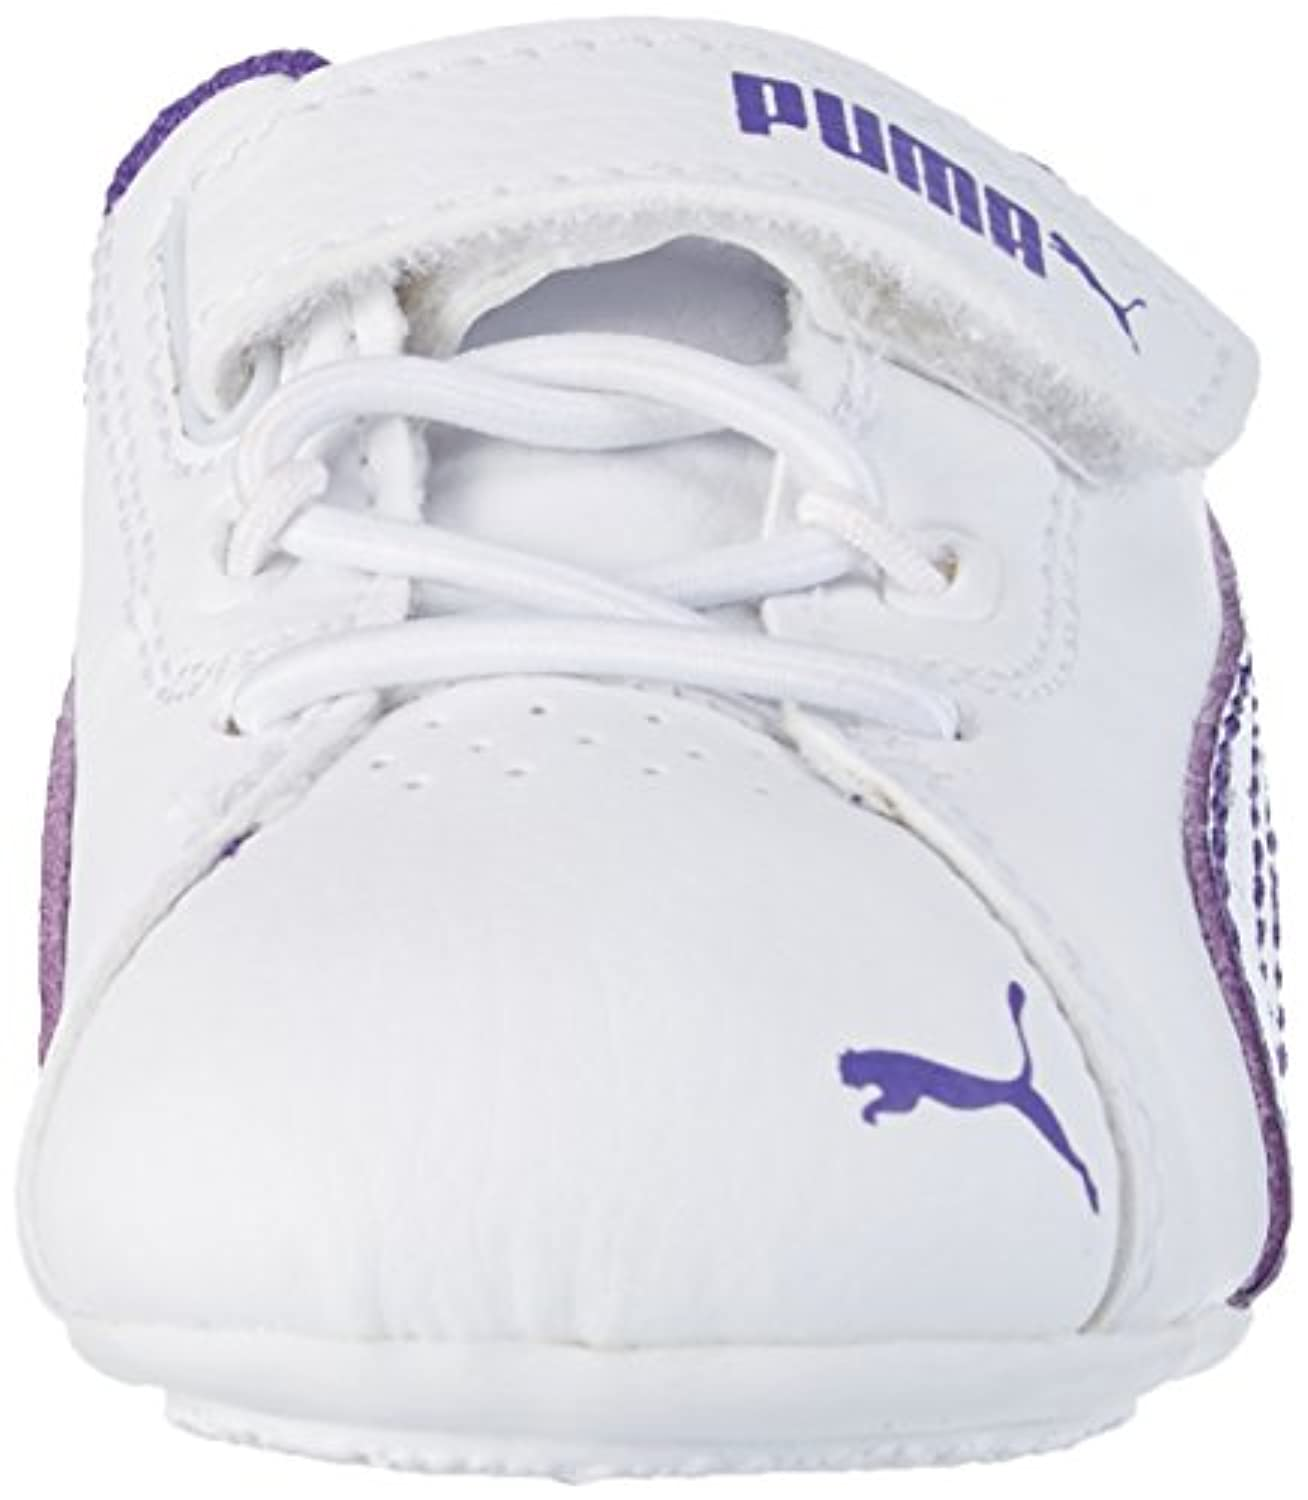 Puma Unisex Kids' Janine Dance 2 V Low-Top Sneakers White Size: 4.5 Child UK